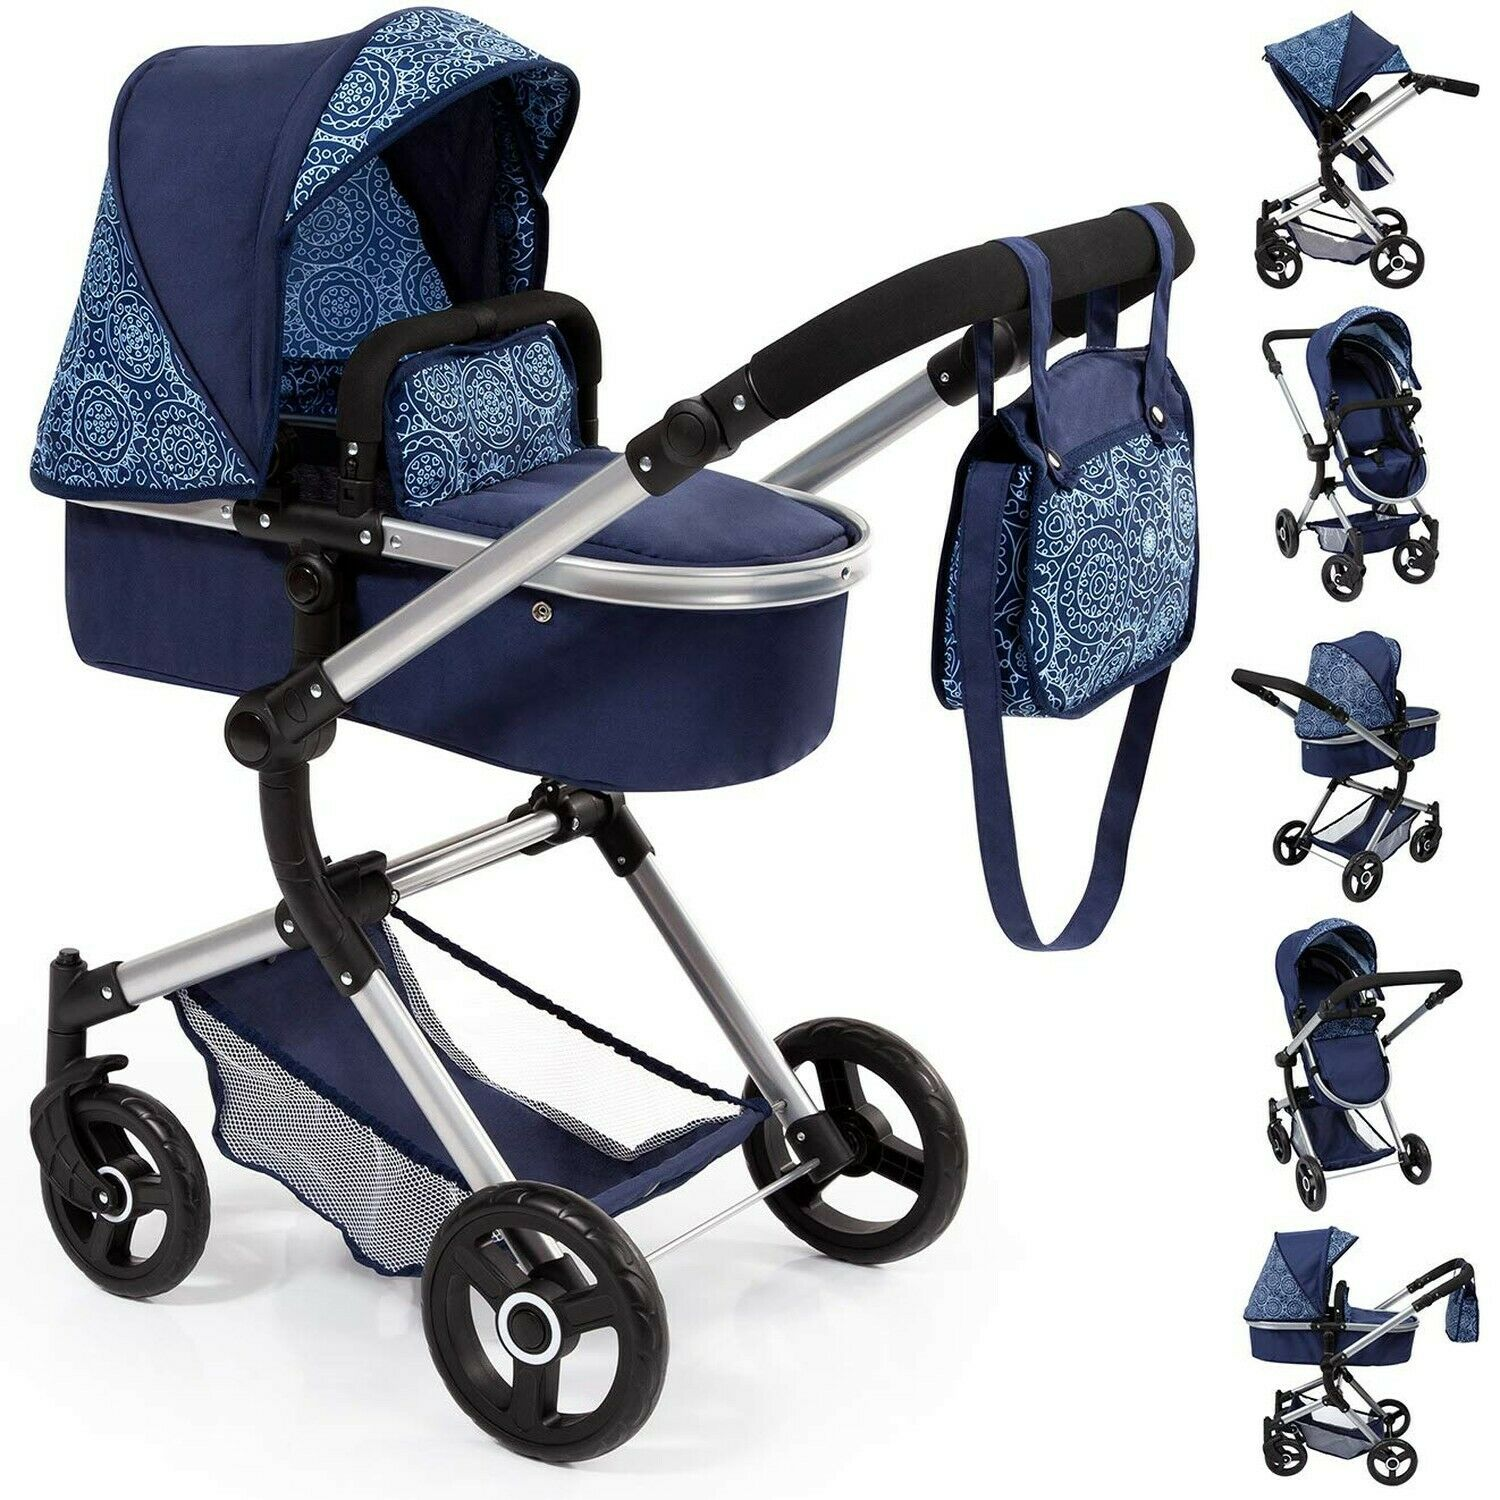 Bayer Design 18403AA Stroller Doll Combi Pram Neo Vario with Changing Bag an...